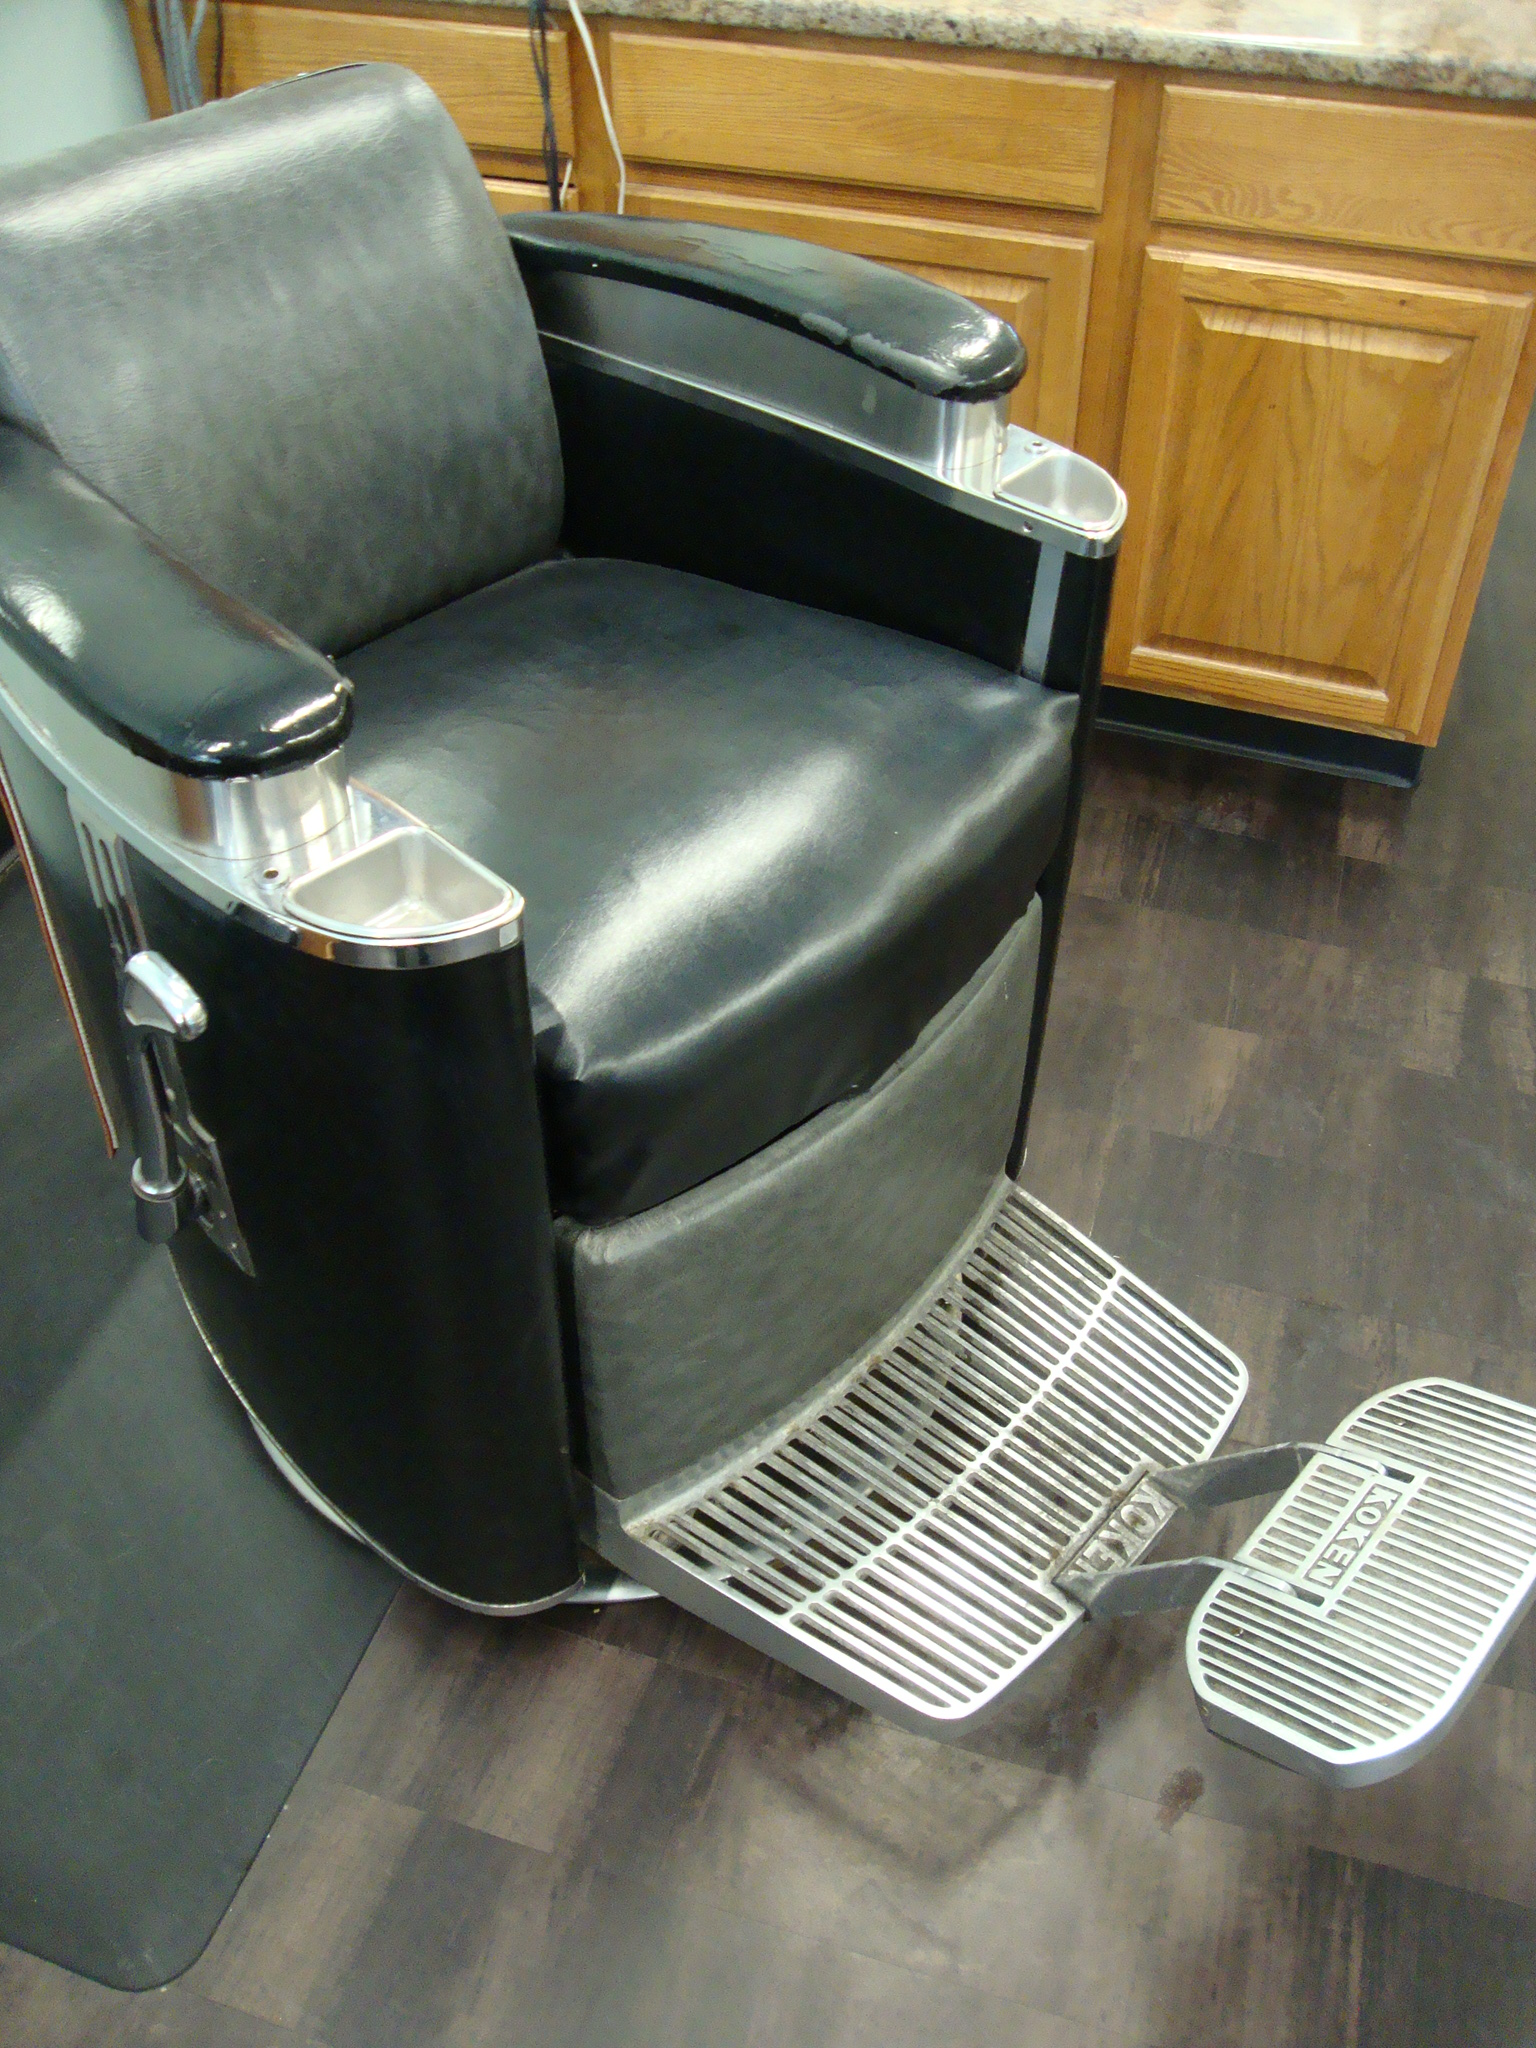 Becky's chair - Rockin' Old School barber style!